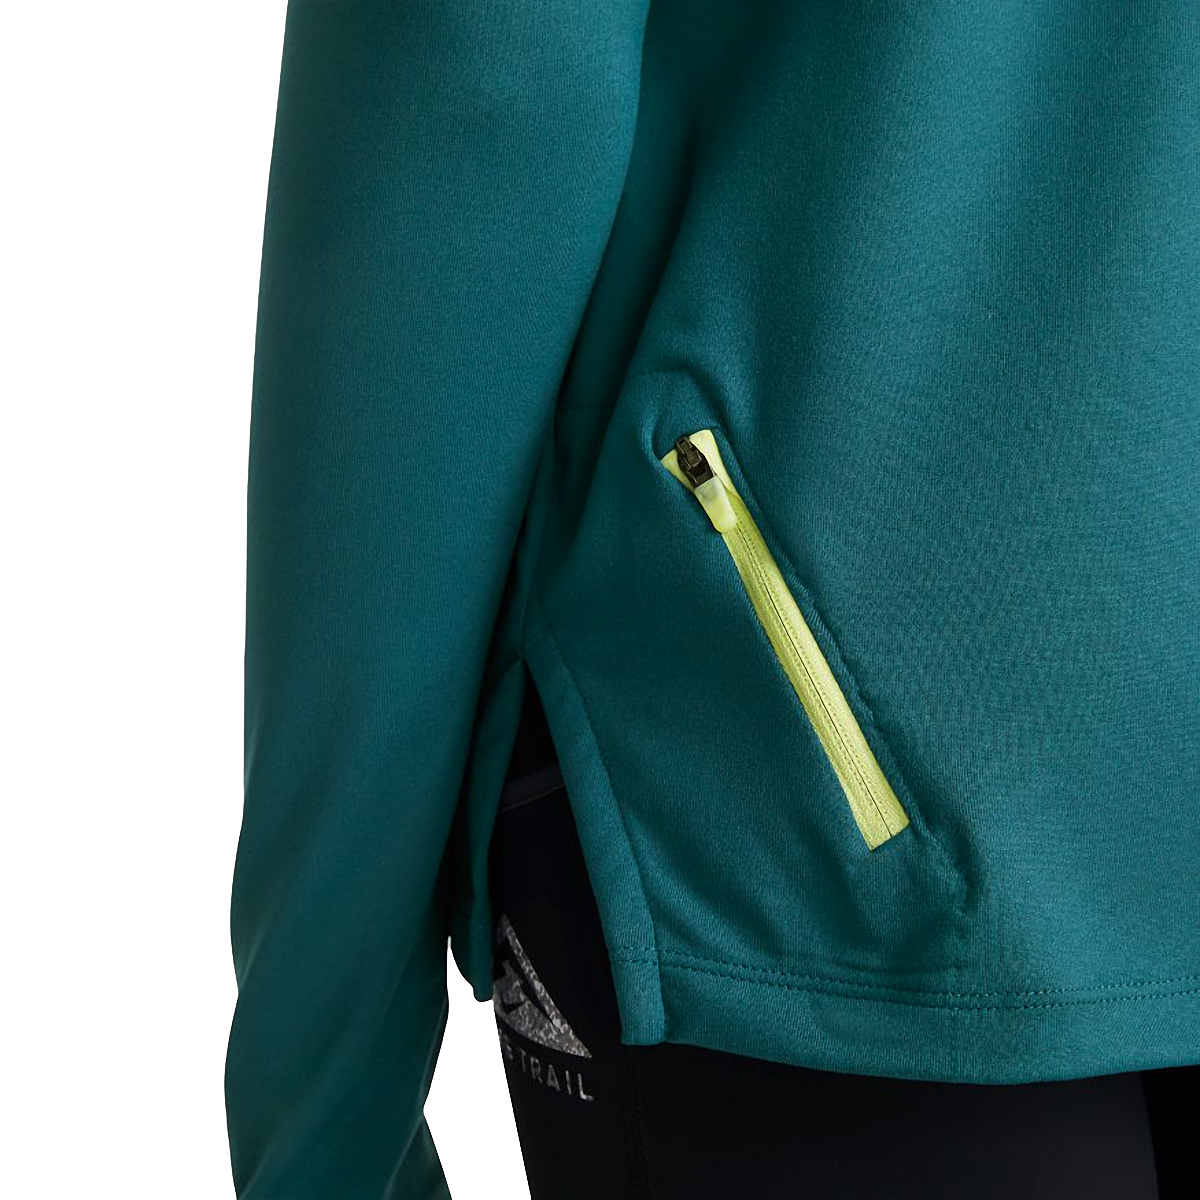 Women's Nike Element Trail Running Midlayer - Color: Dark Teal Green/Reflective Silver - Size: XS, Dark Teal Green/Reflective Silver, large, image 3